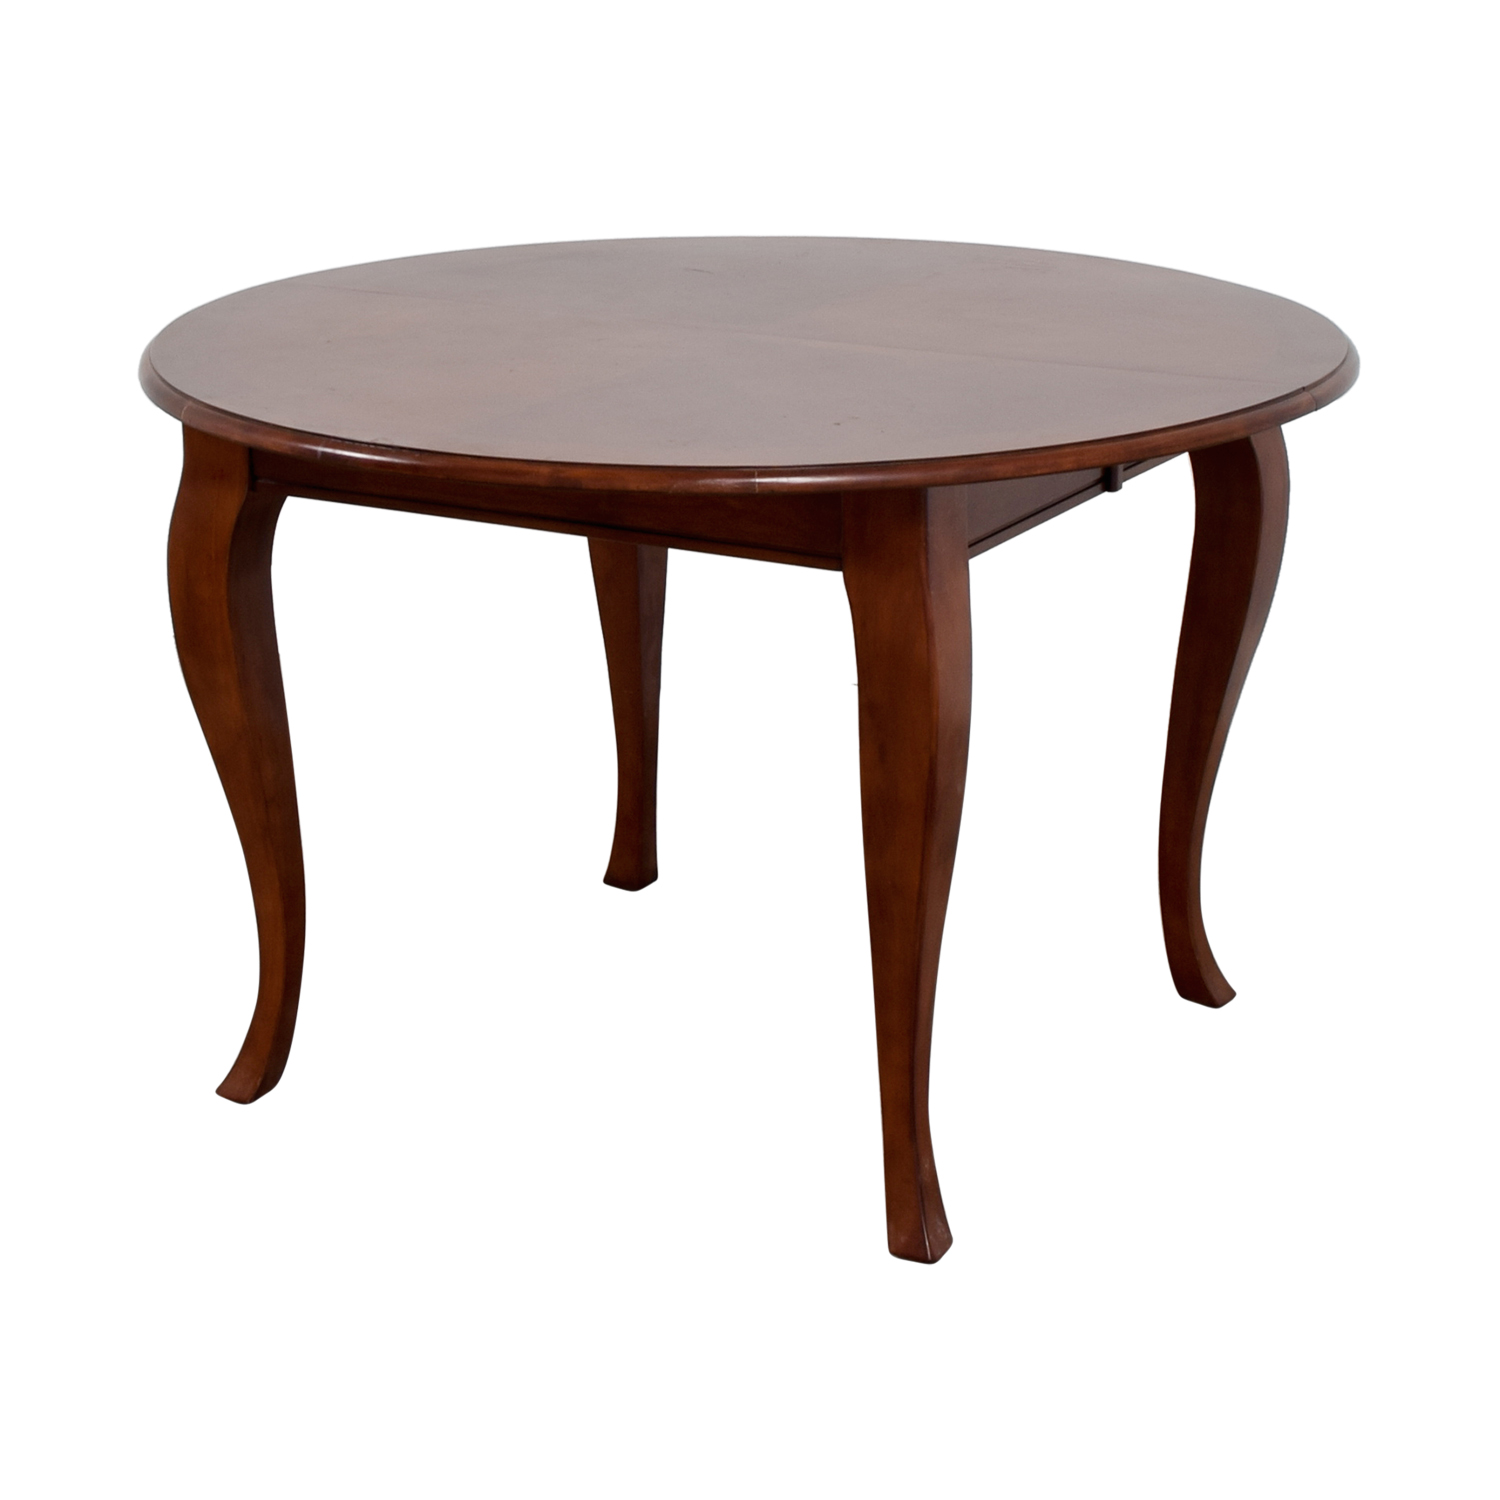 Broyhill Dining Room Table: Broyhill Broyhill Wooden Dining Room Table / Tables